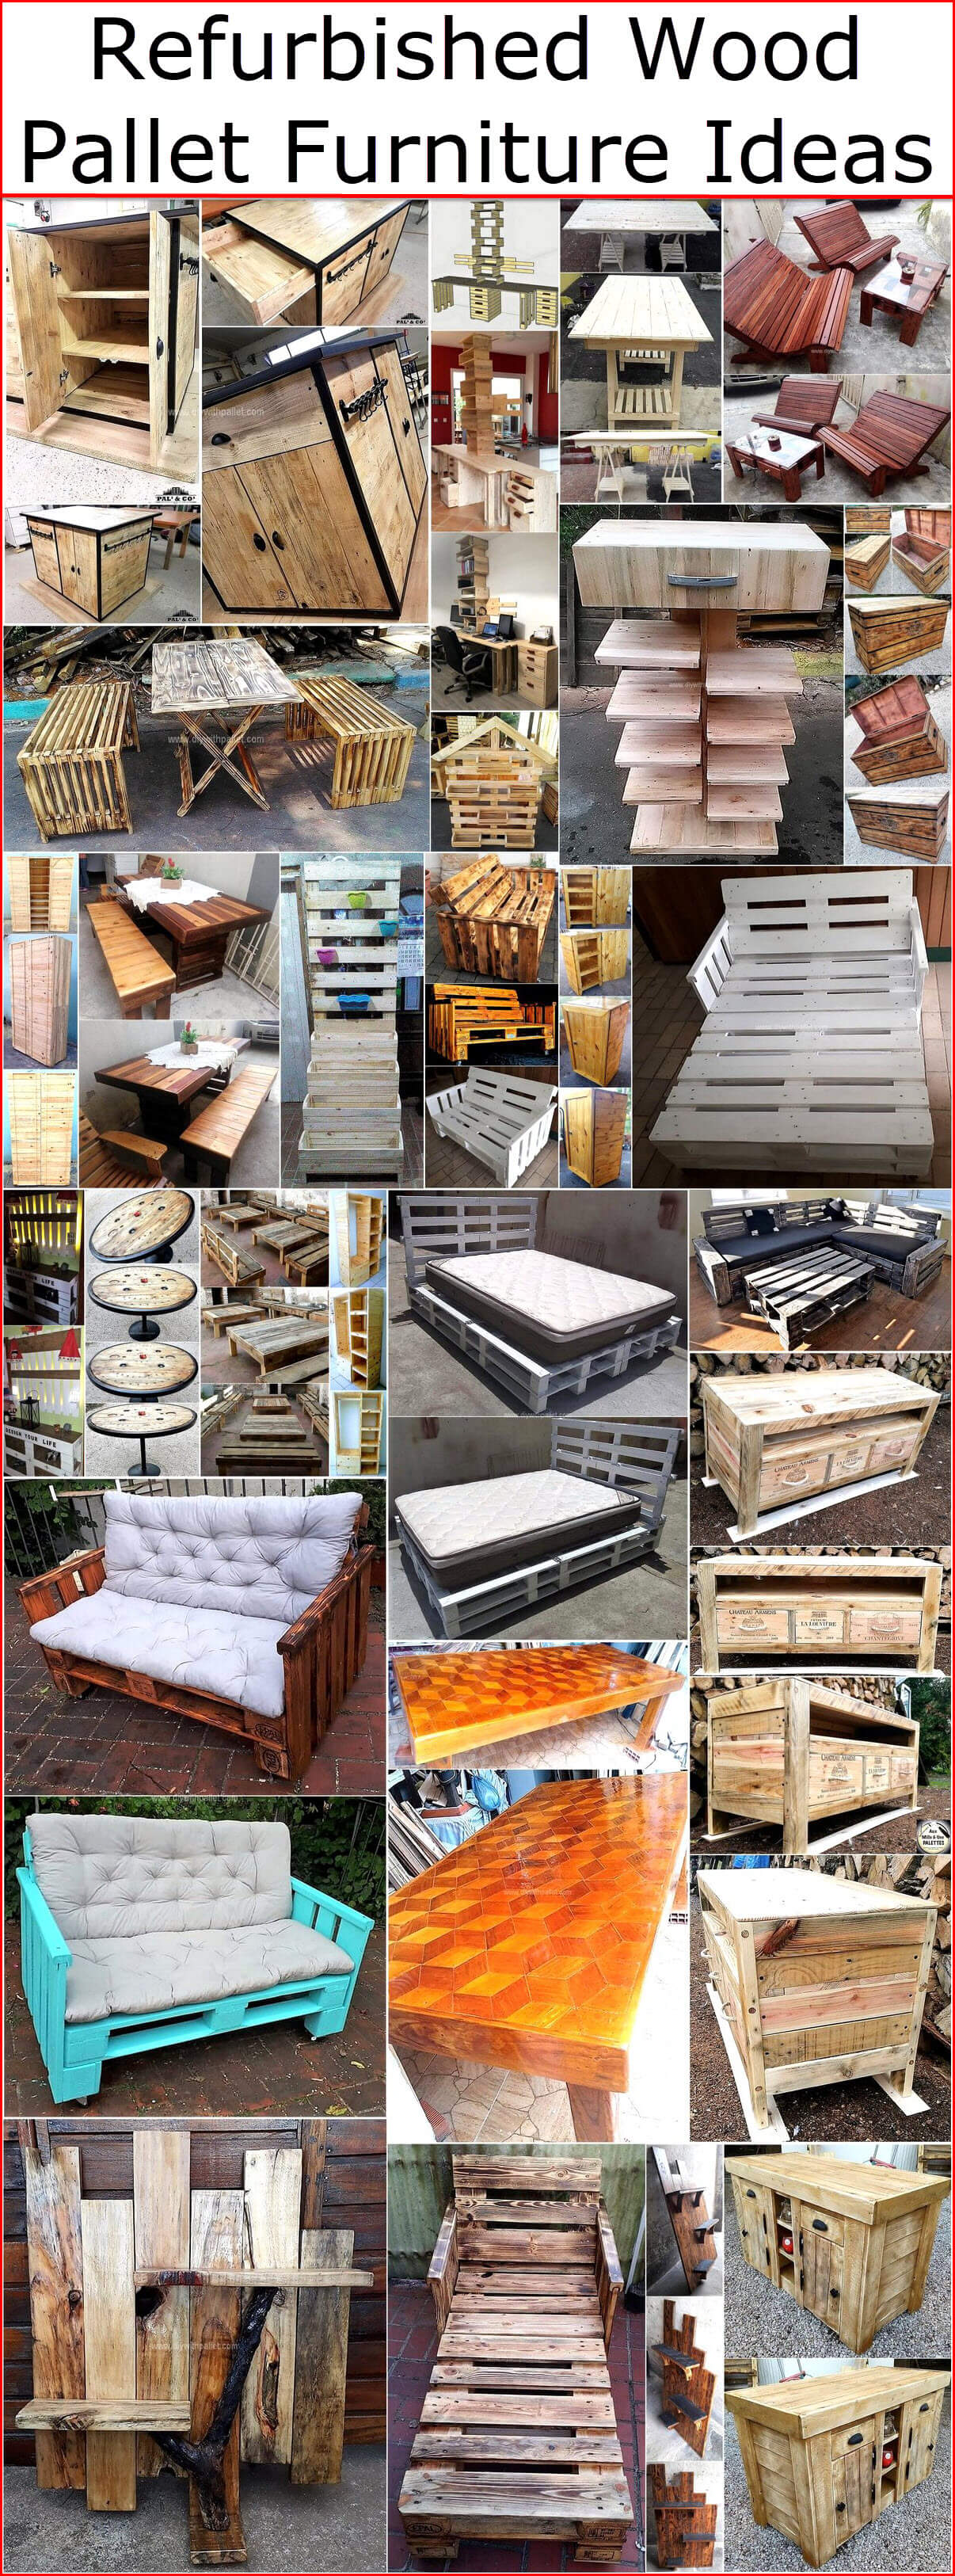 Refurbished Wood Pallet Furniture Ideas Wood Pallet Creations